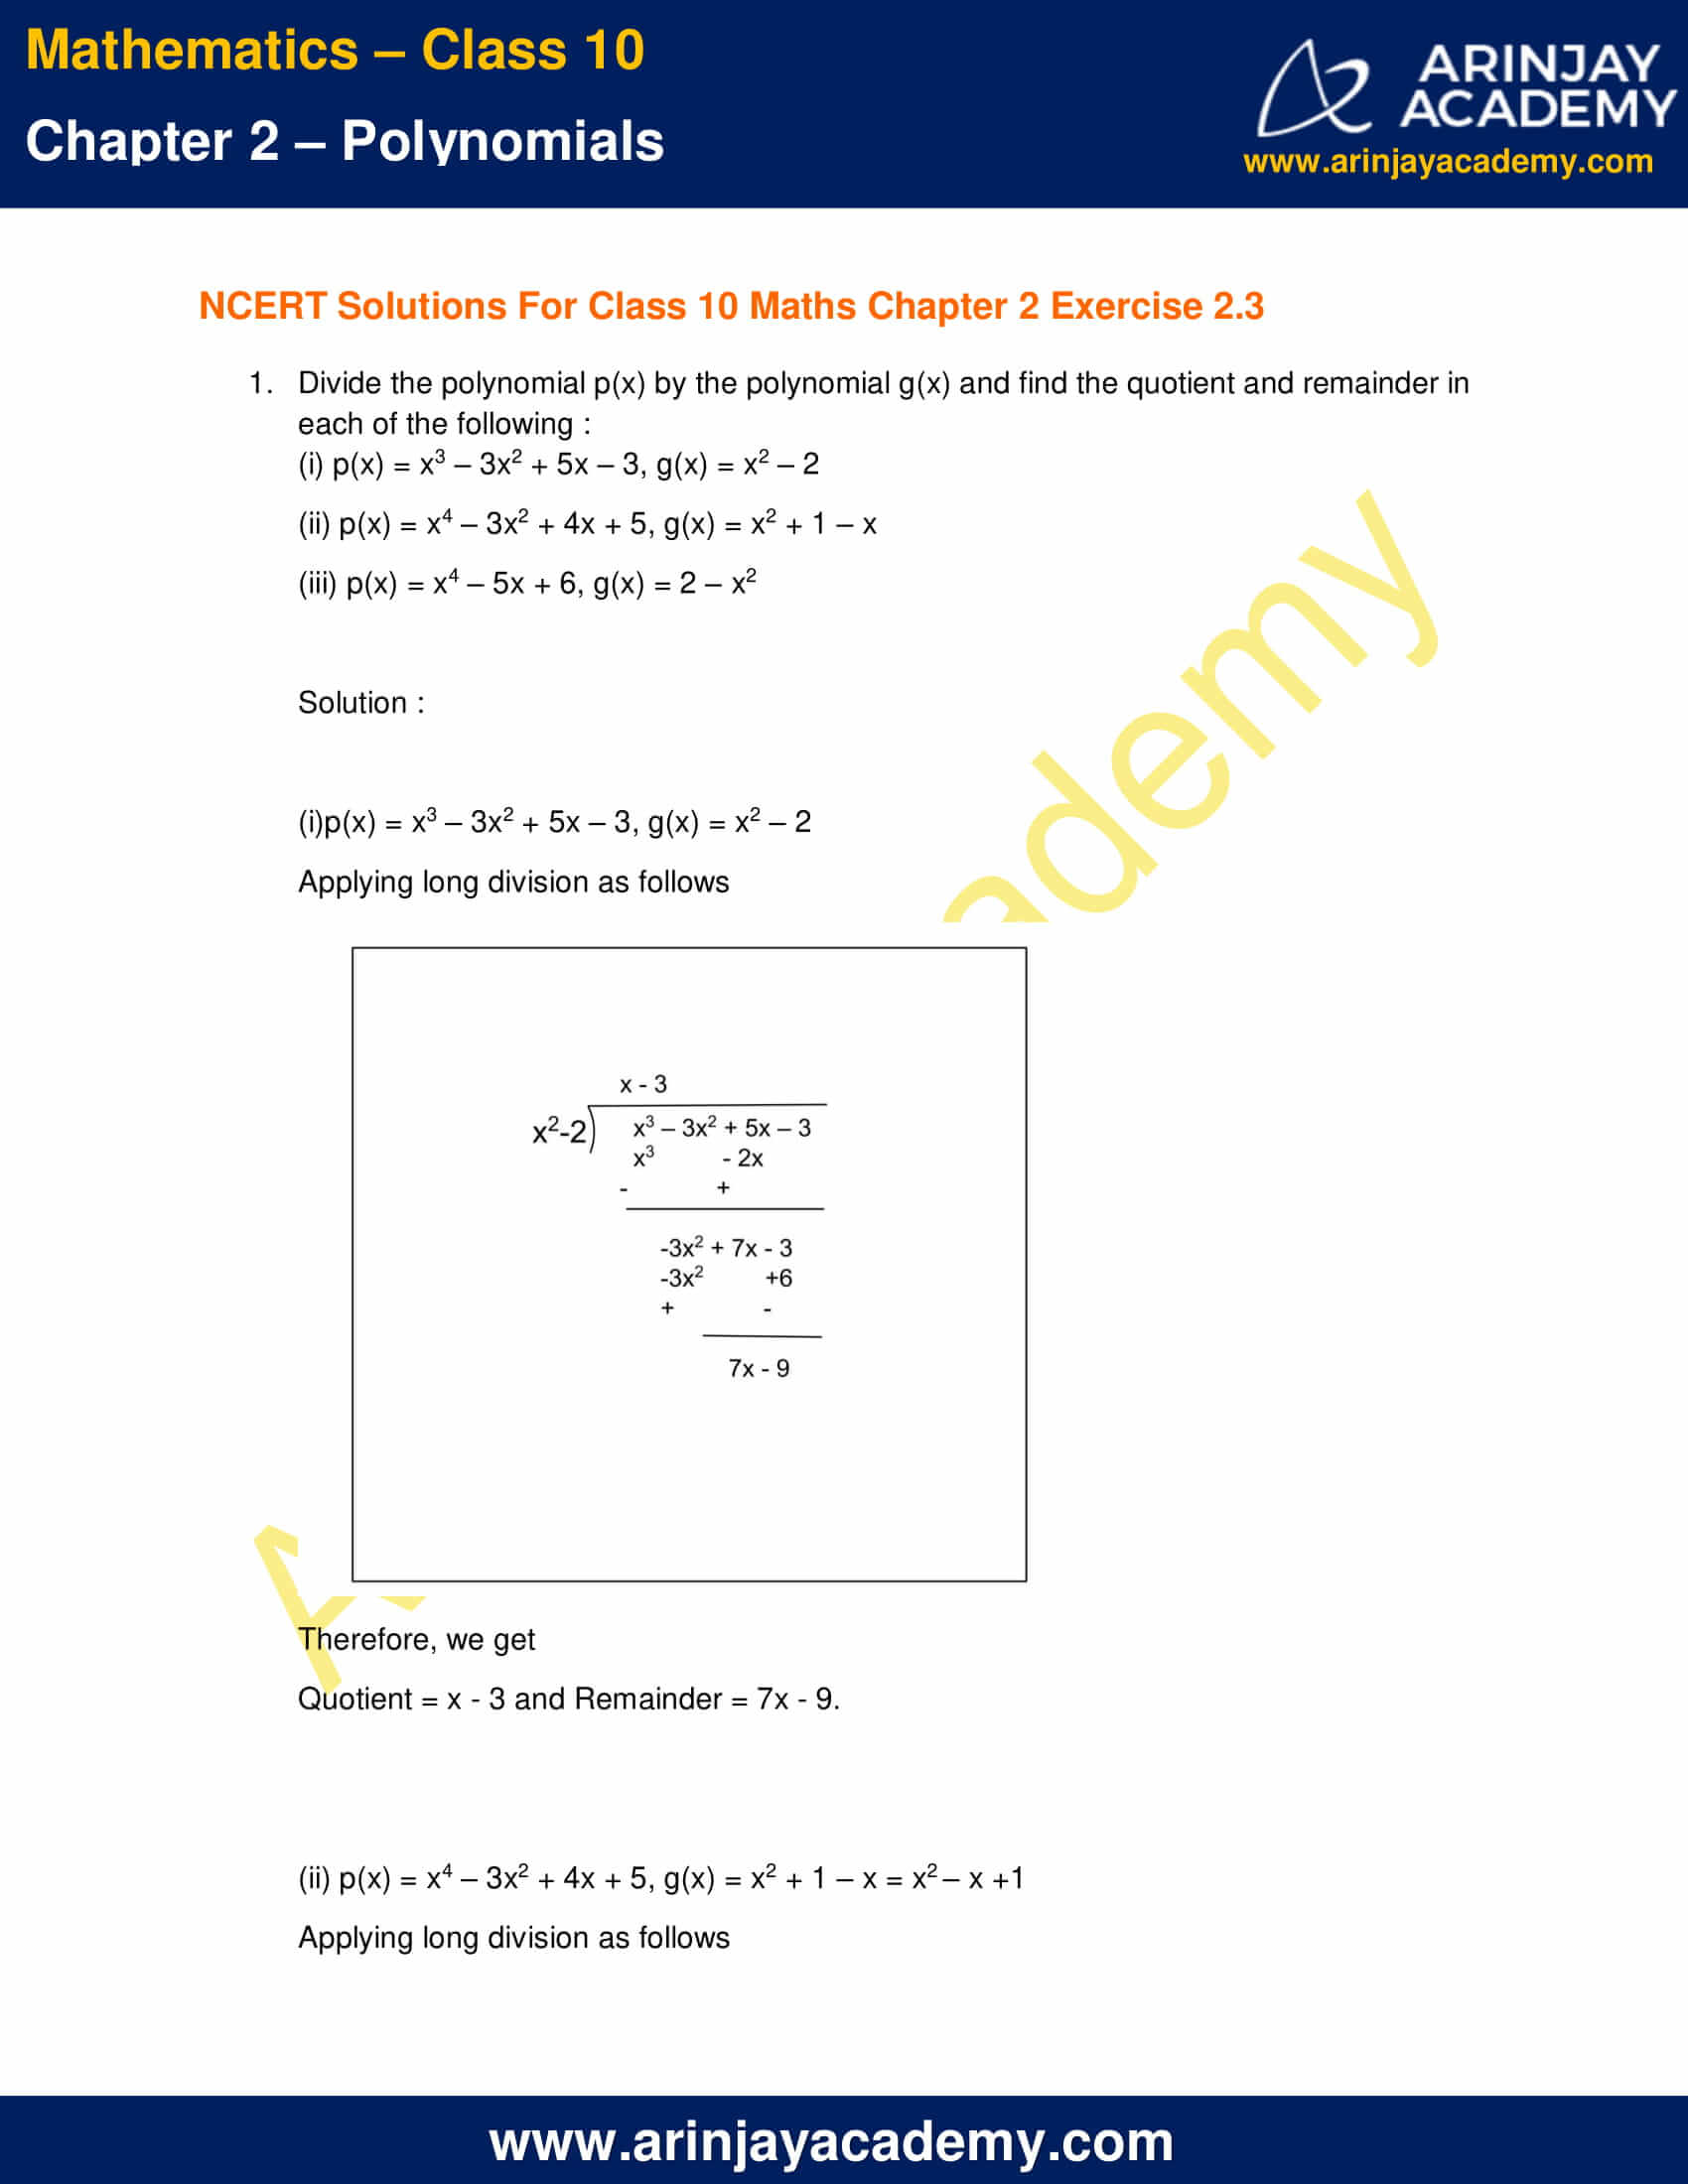 NCERT Solutions For Class 10 Maths Chapter 2 Exercise 2.3 part 1